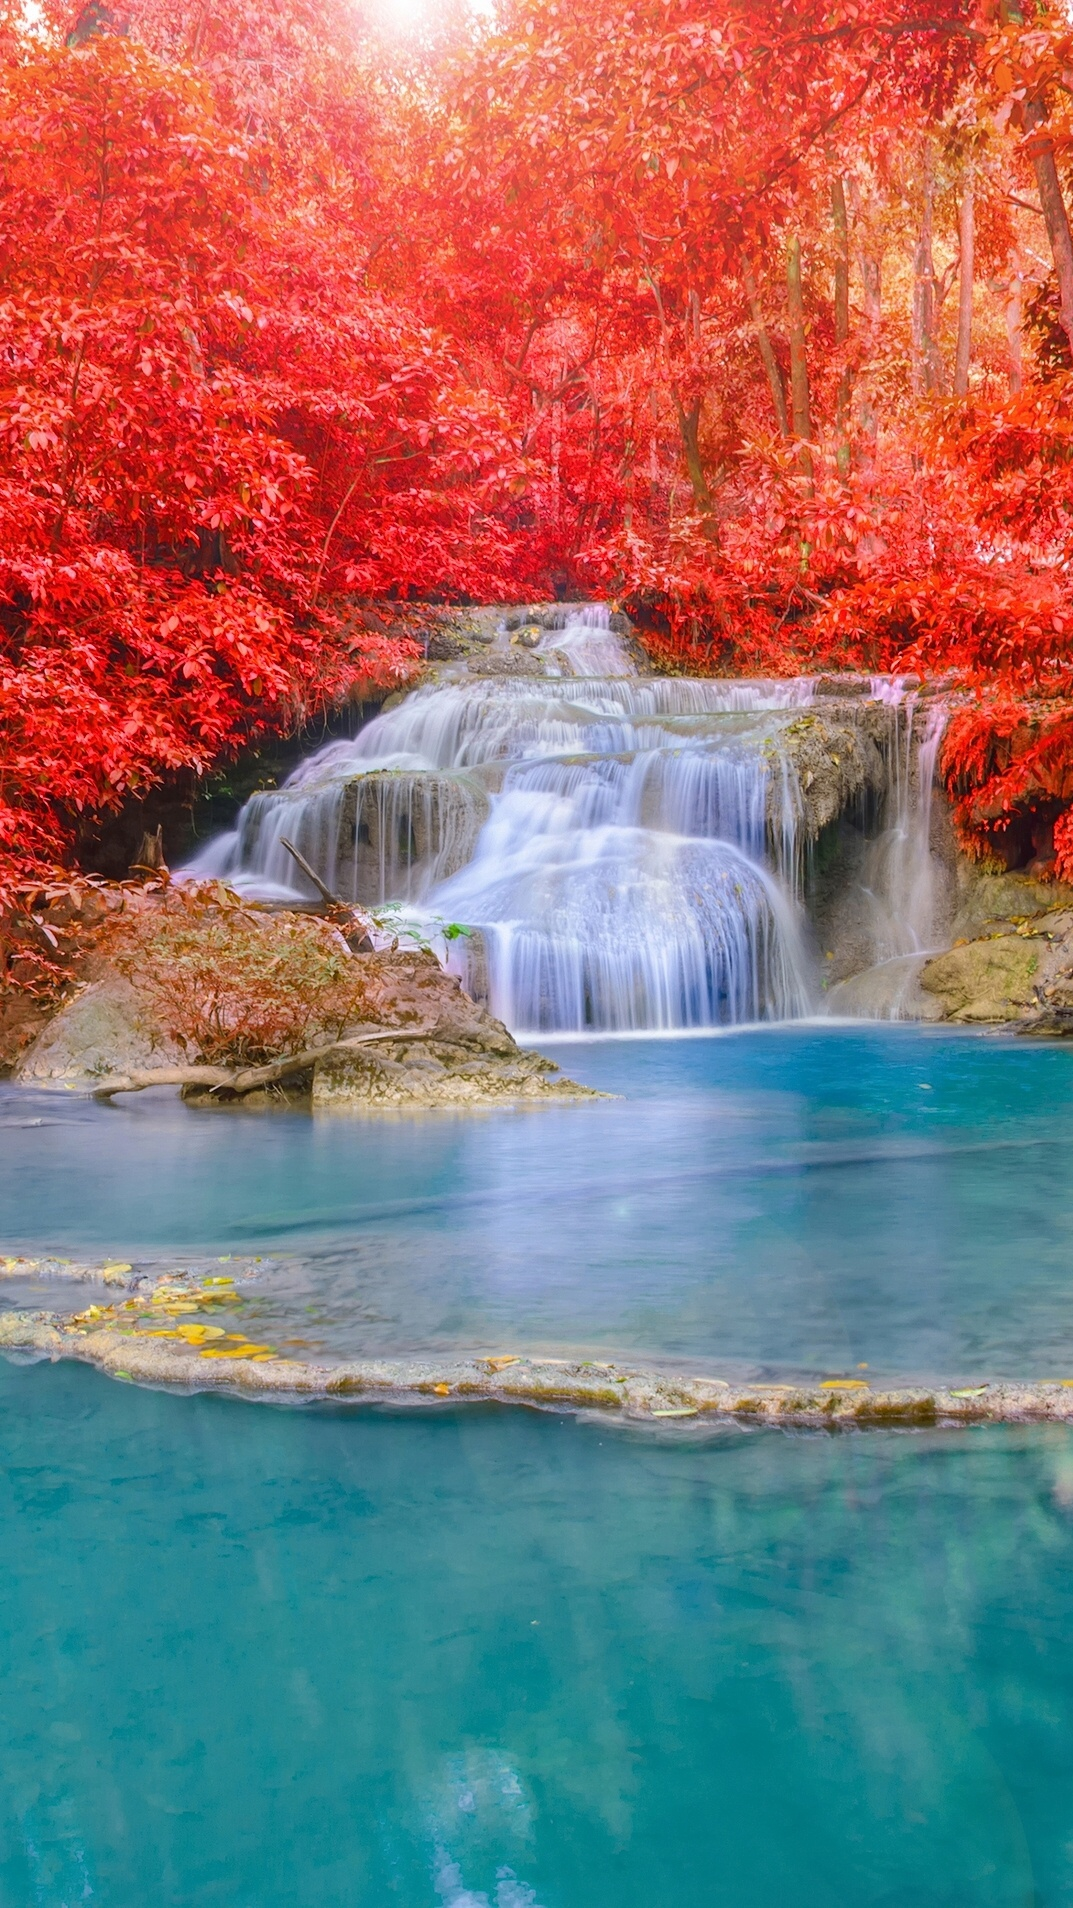 Animated Fall Wallpaper Waterfall River Iphone Wallpaper Iphone Wallpapers